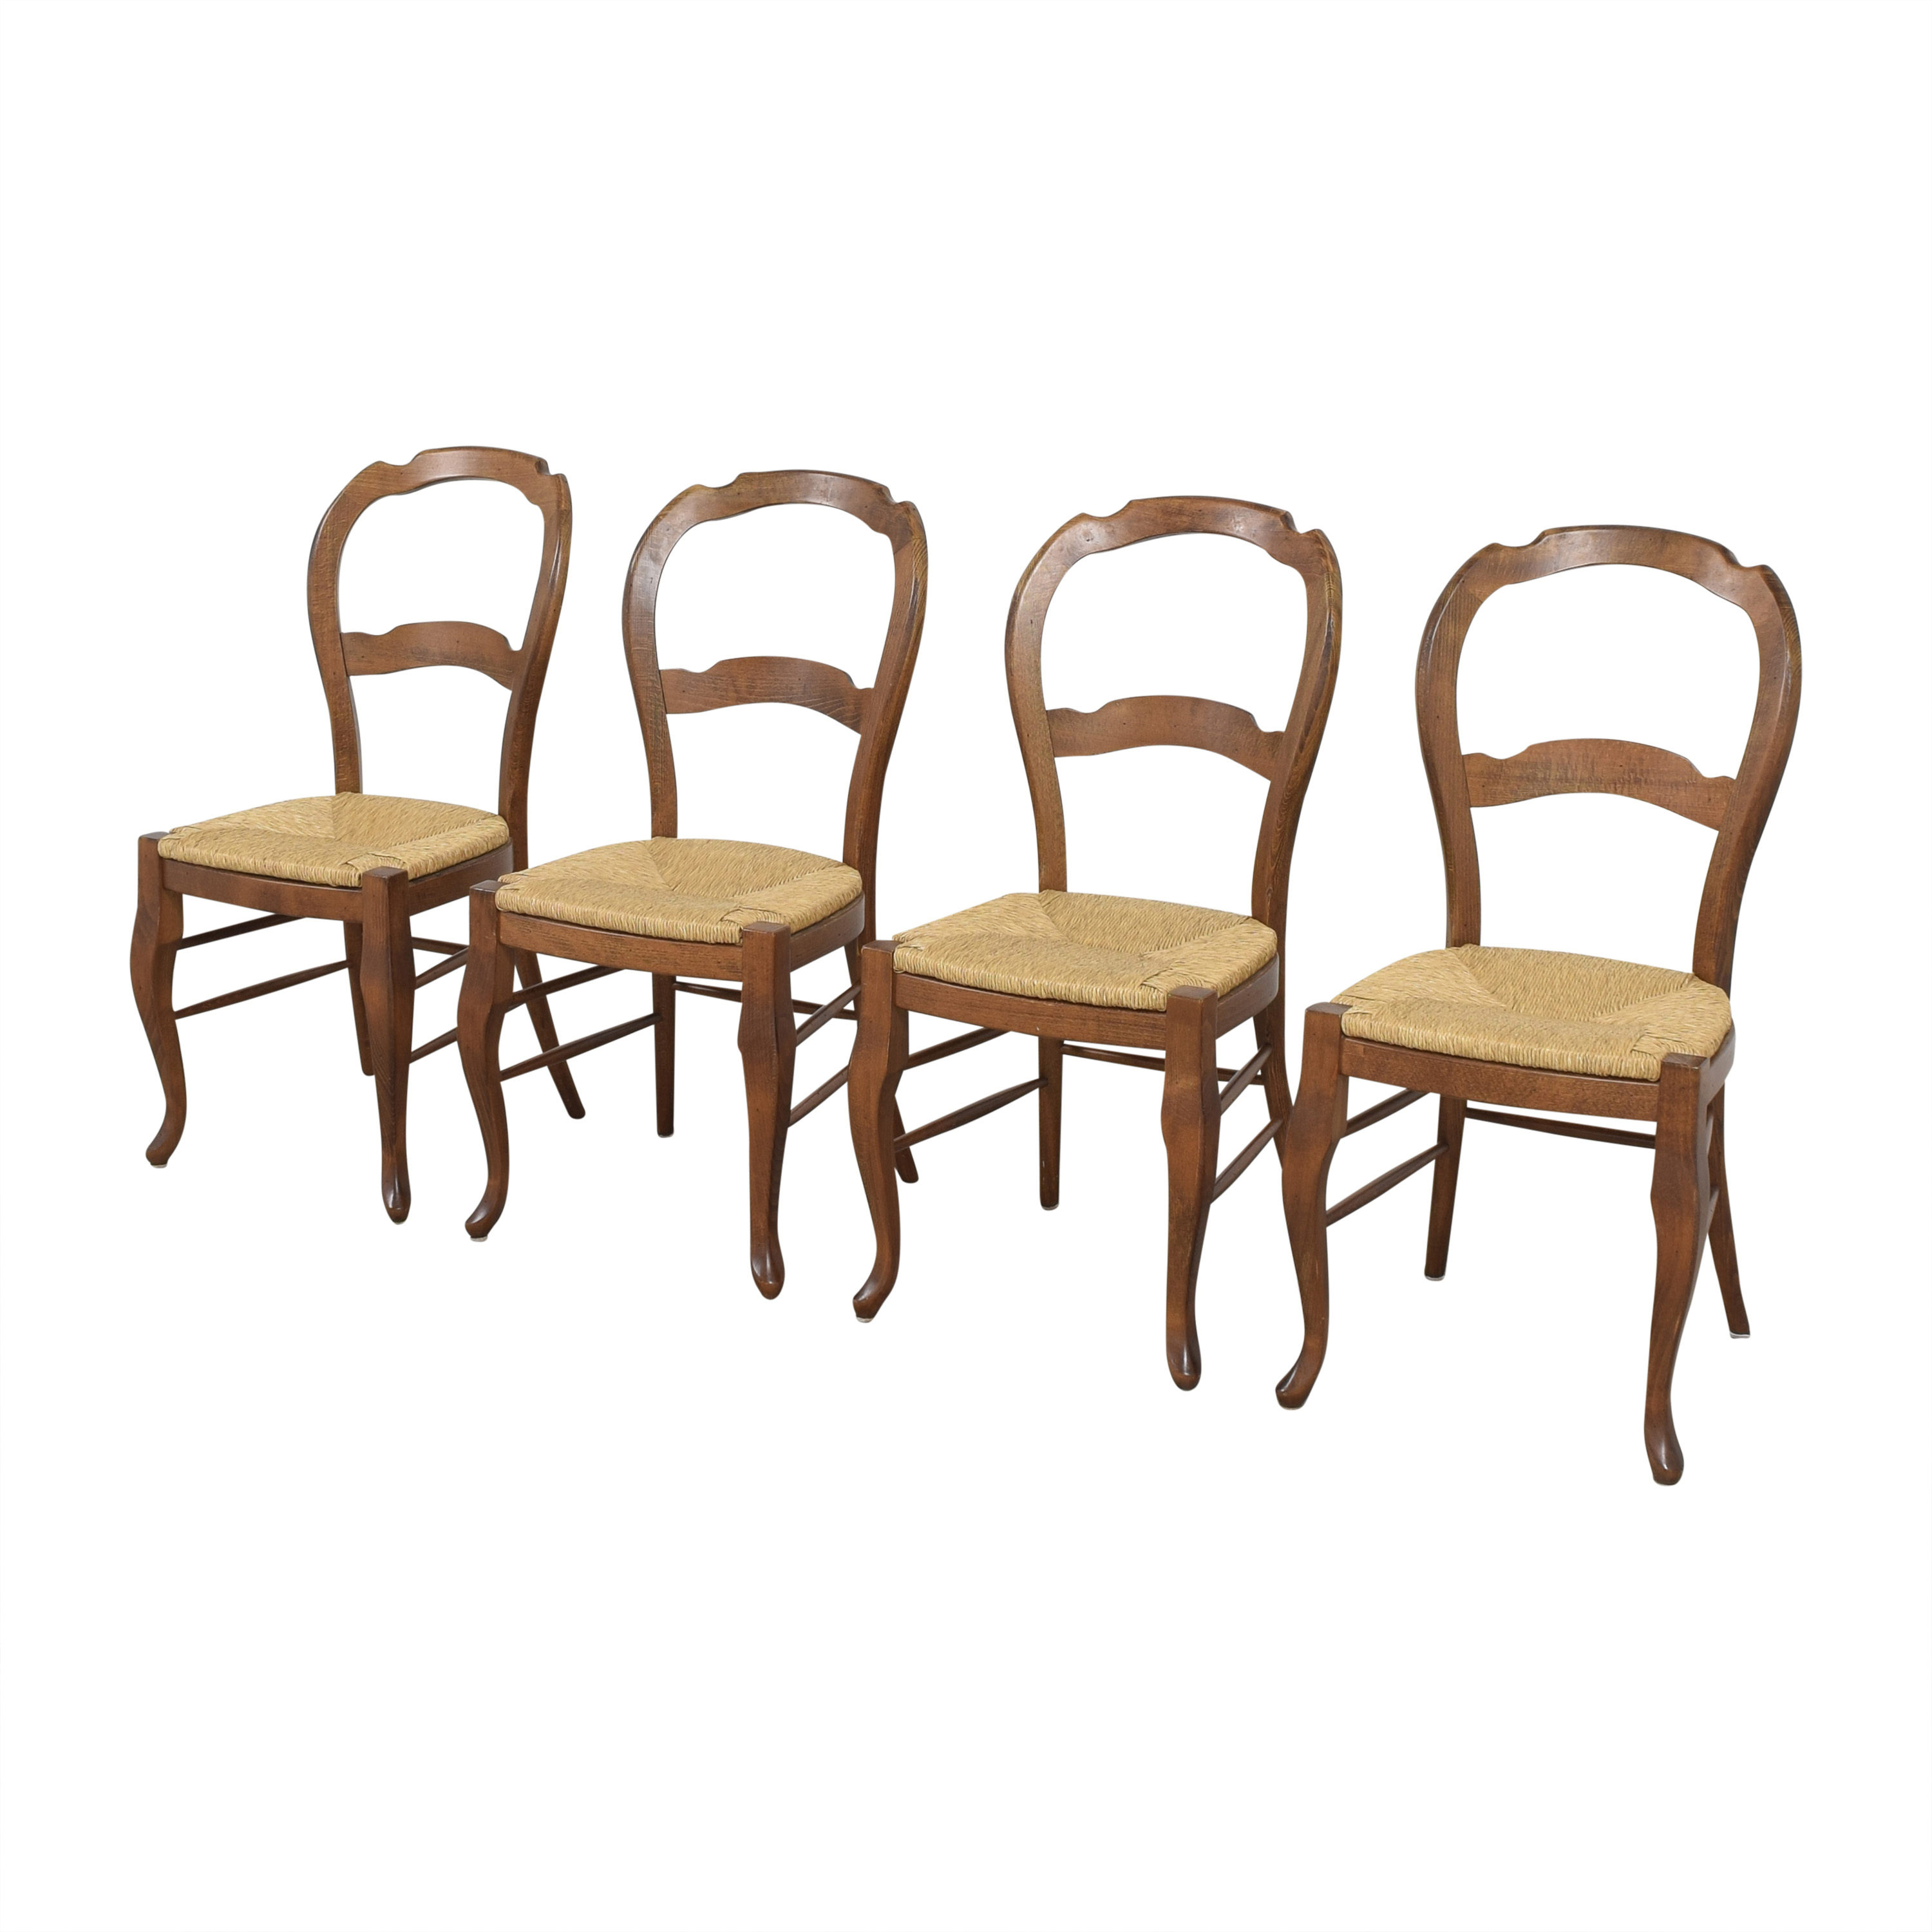 buy Pottery Barn Pottery Barn Woven Seat Dining Chairs online